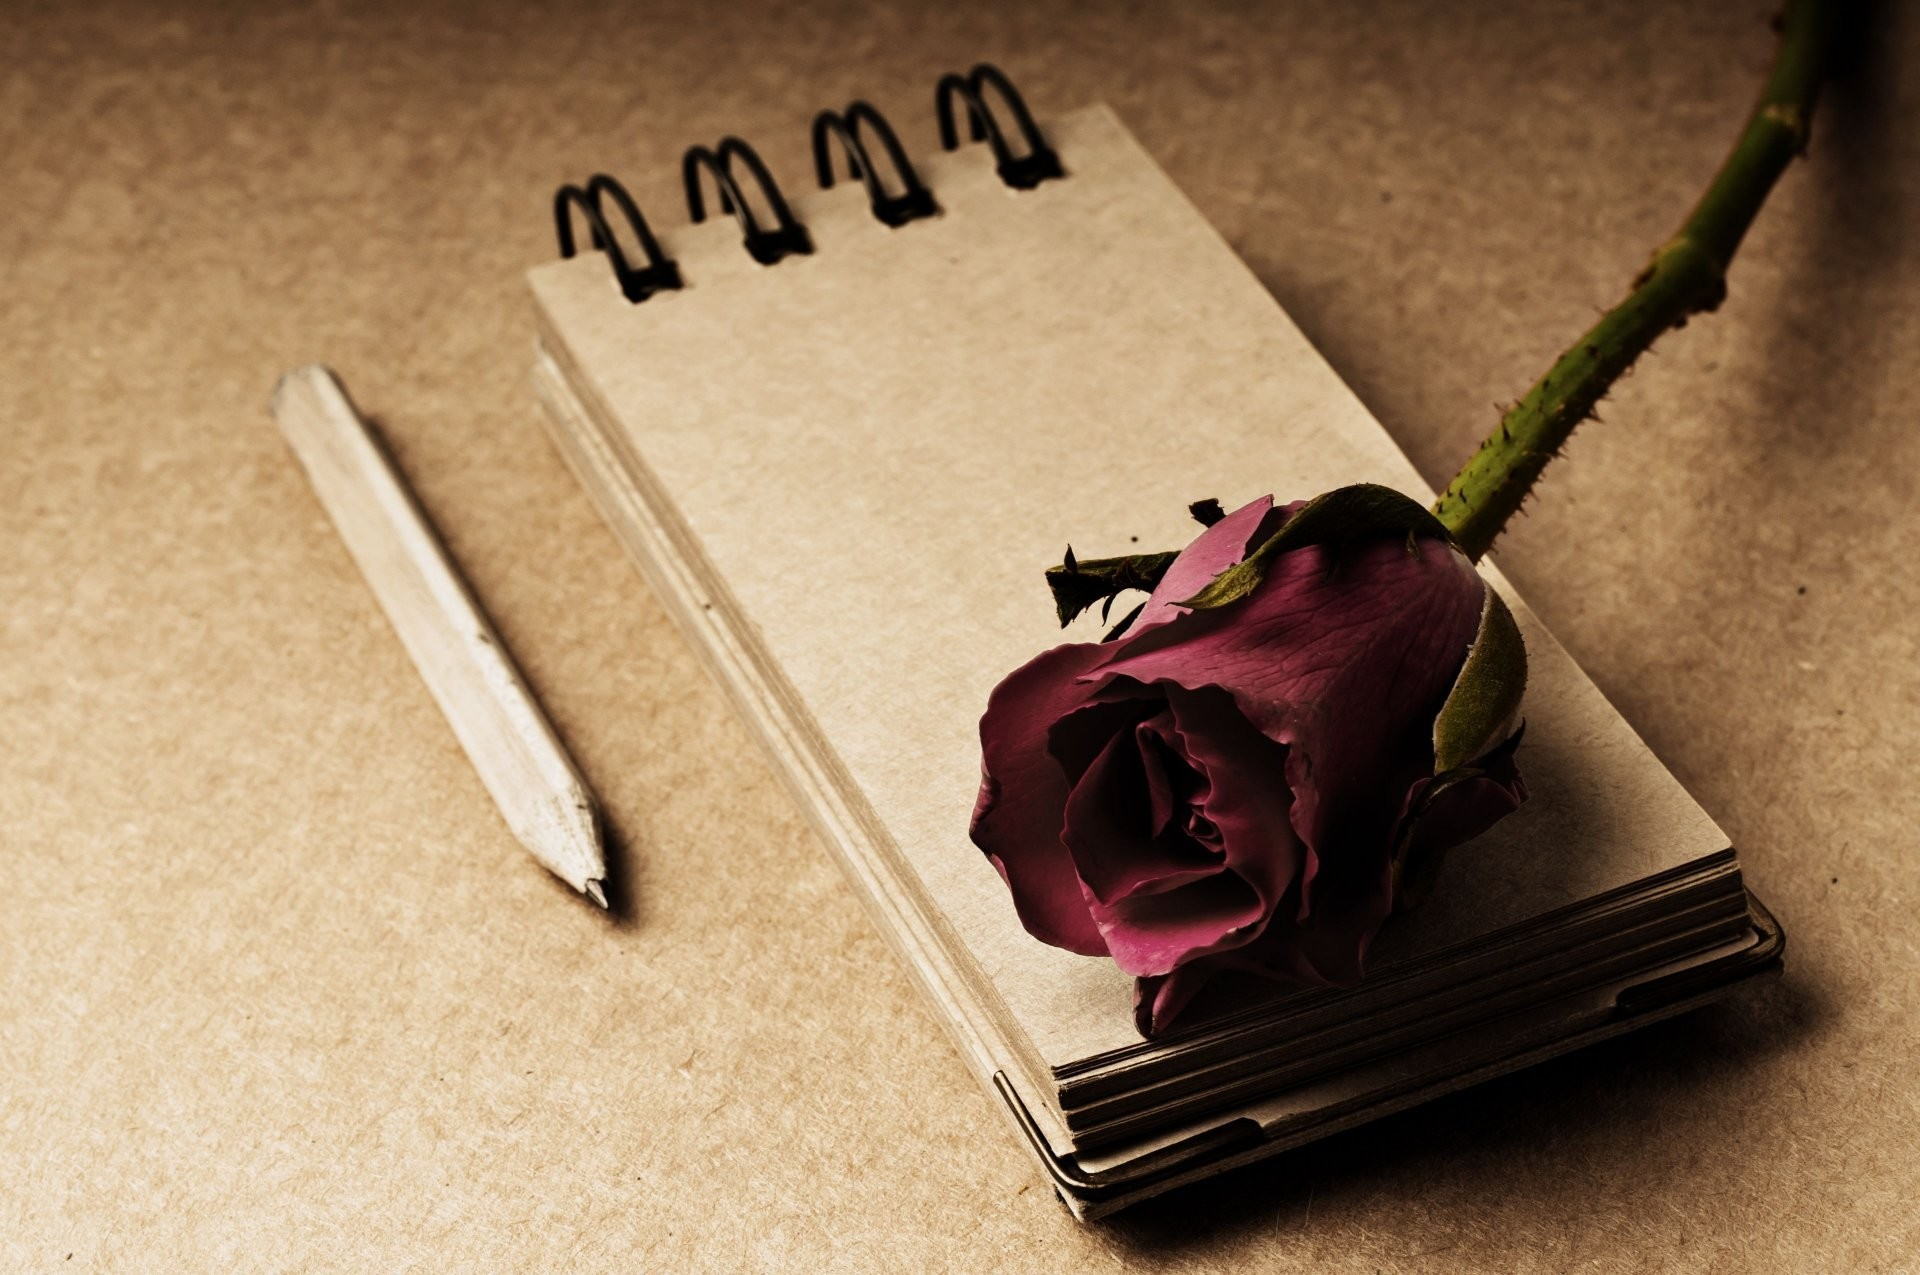 style notes notebook flower flower rose red pencil background widescreen  full screen widescreen hd wallpapers